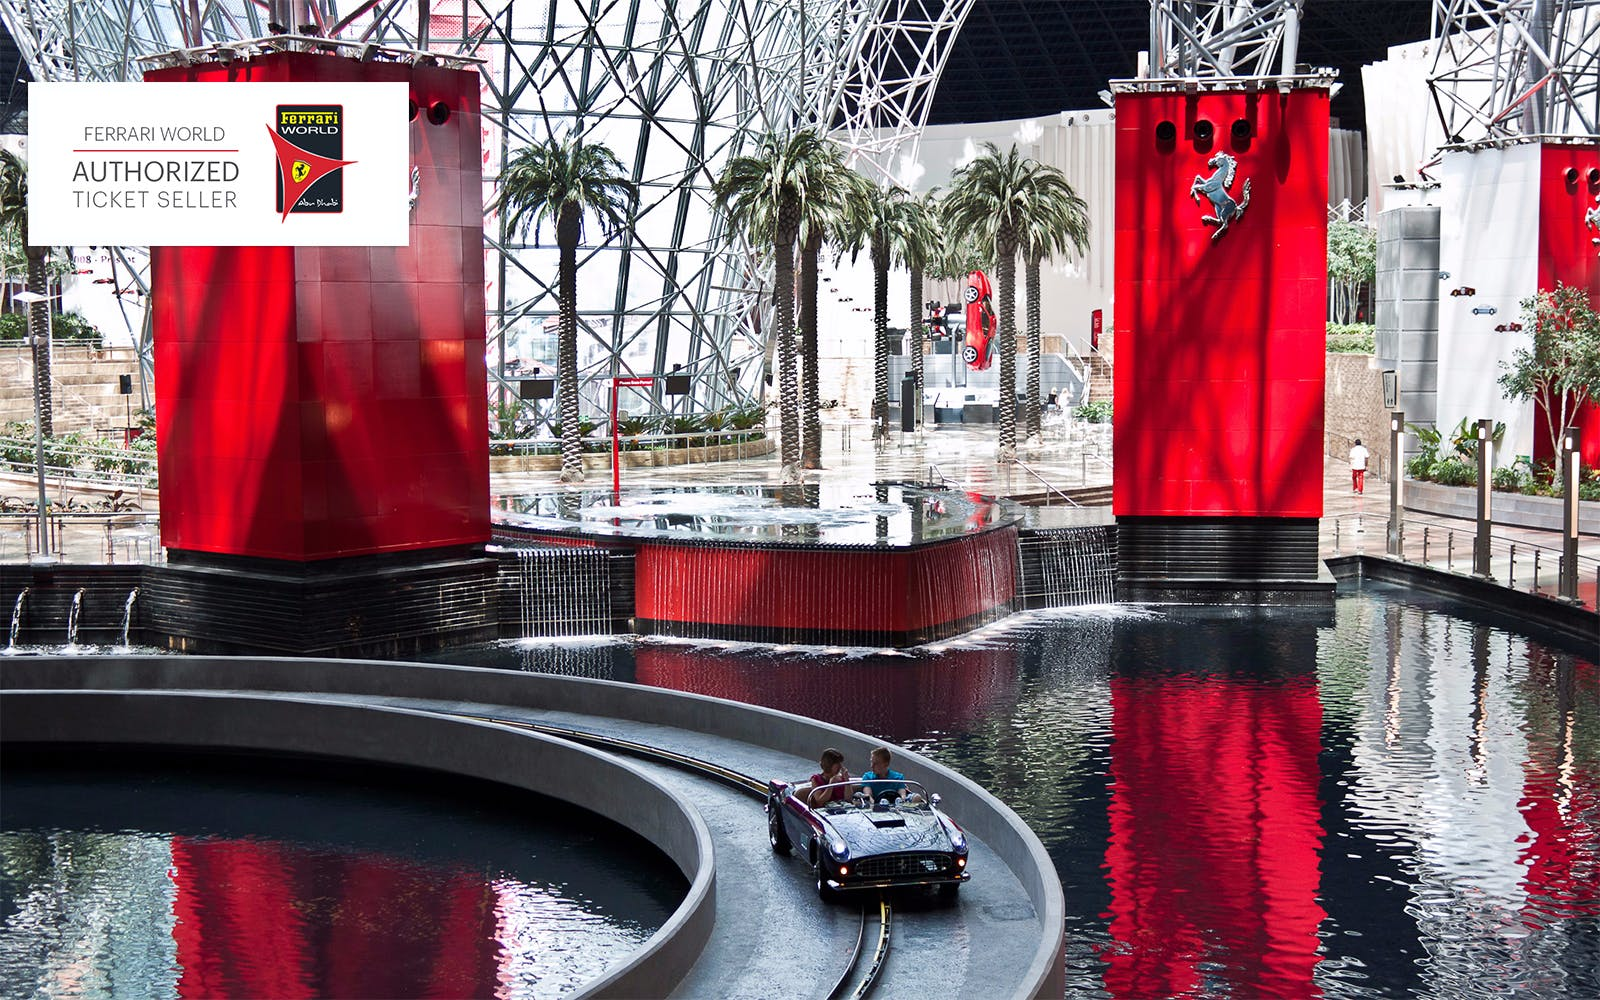 Ferrari World Tickets With Transfers